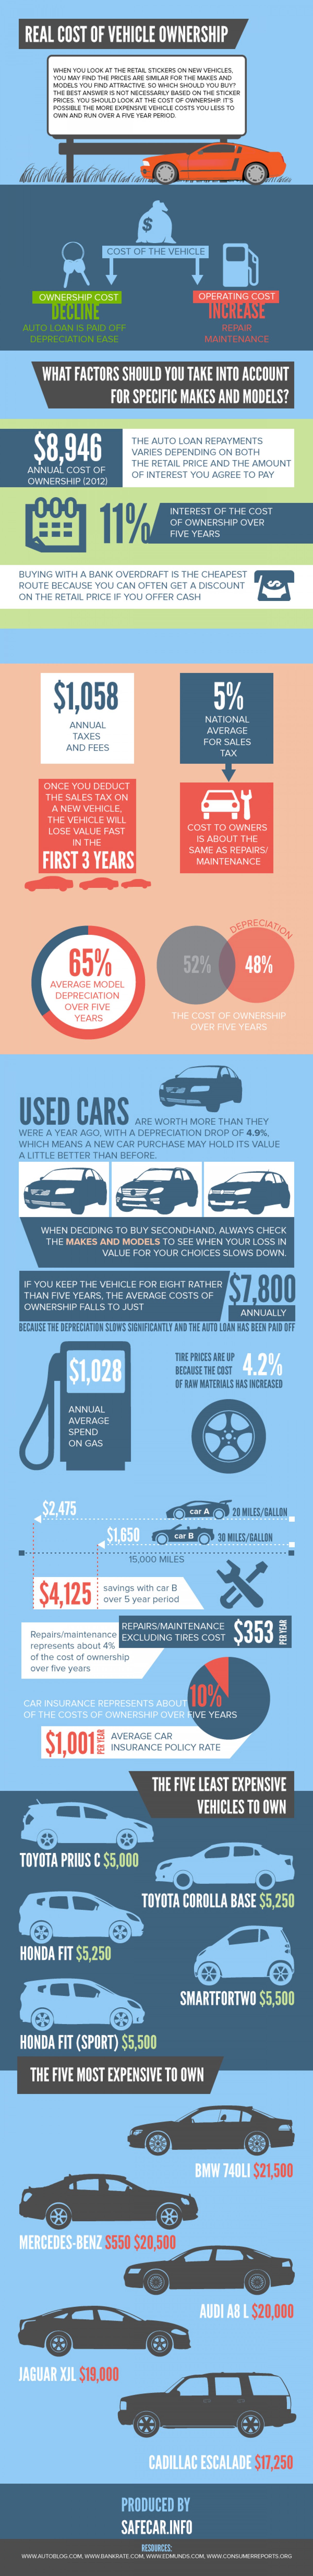 Real Cost of Vehicle Ownership Infographic